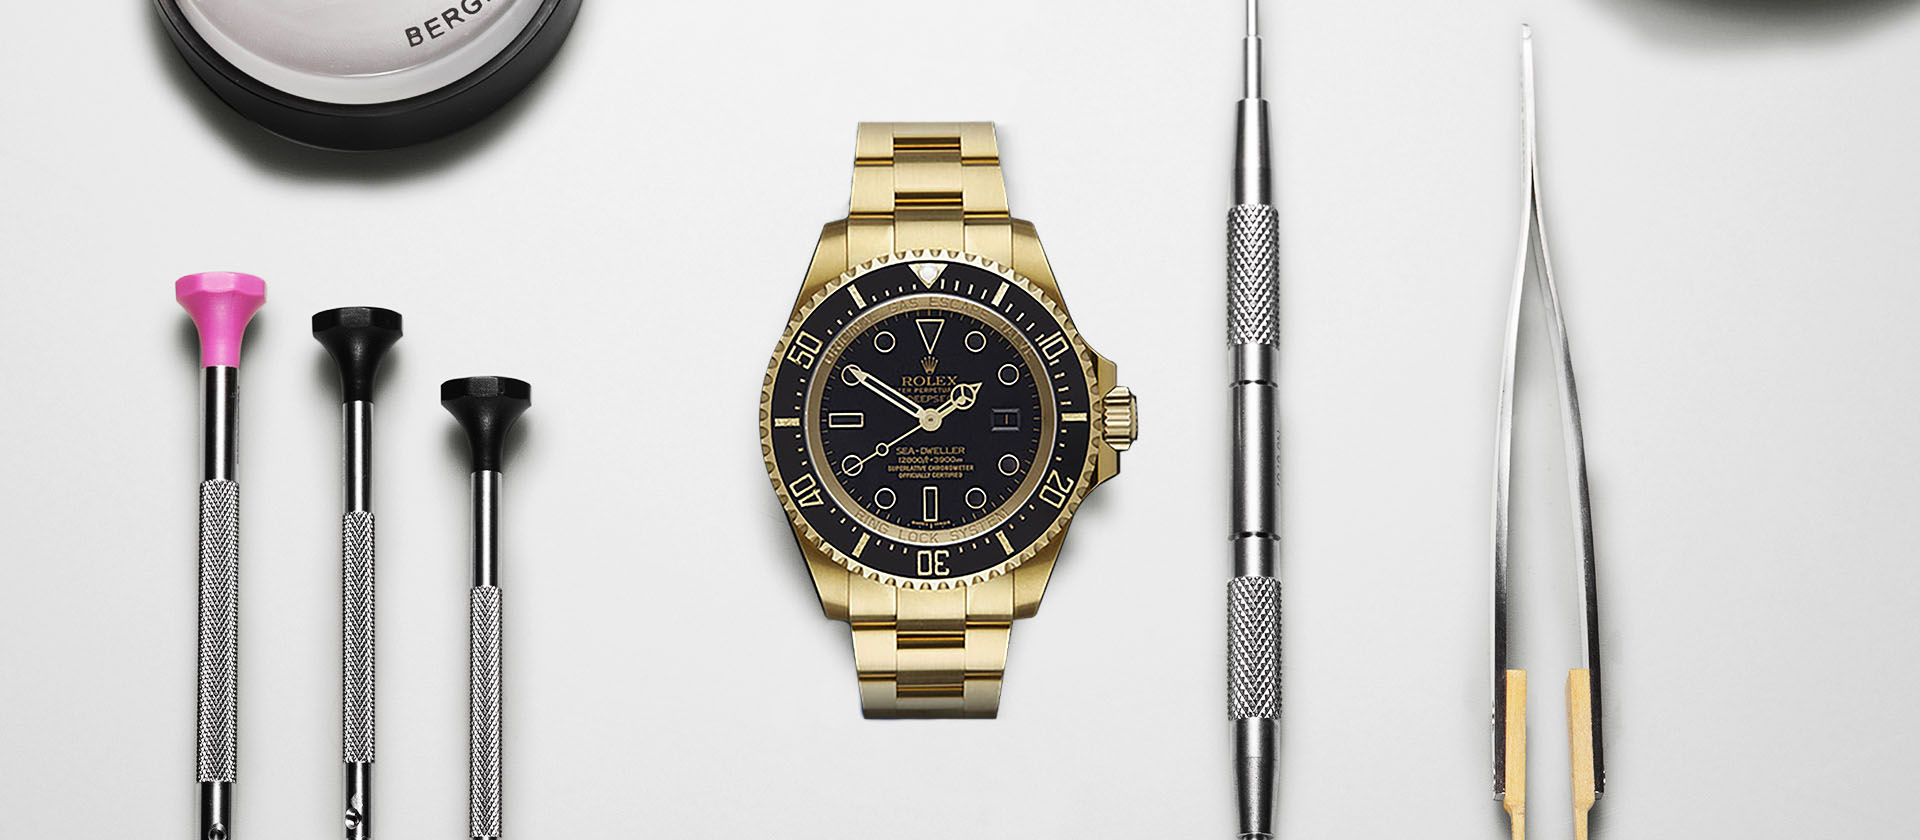 Rolex DeepSea: Solid 18k Yellow Gold & DLC Protection | Swiss Replica